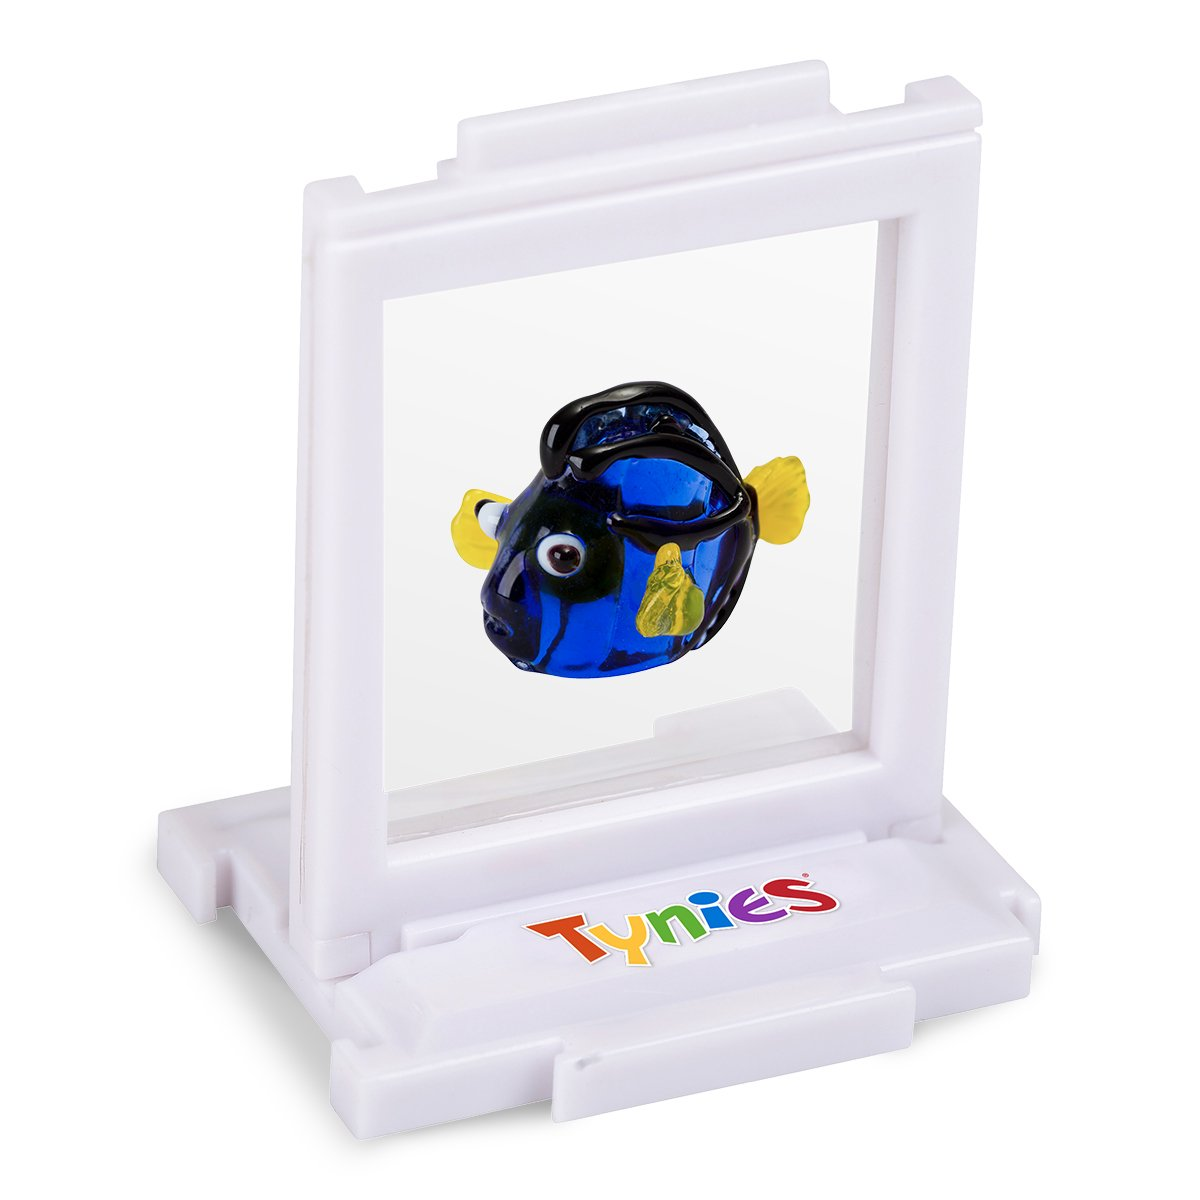 Dark Blue1.9 x 1.6 x 1.2 Tynies Collectibles 168 Dora Blue Hippo Tang Fish Tynies Handmade Glass Figurine with Collectors Frame